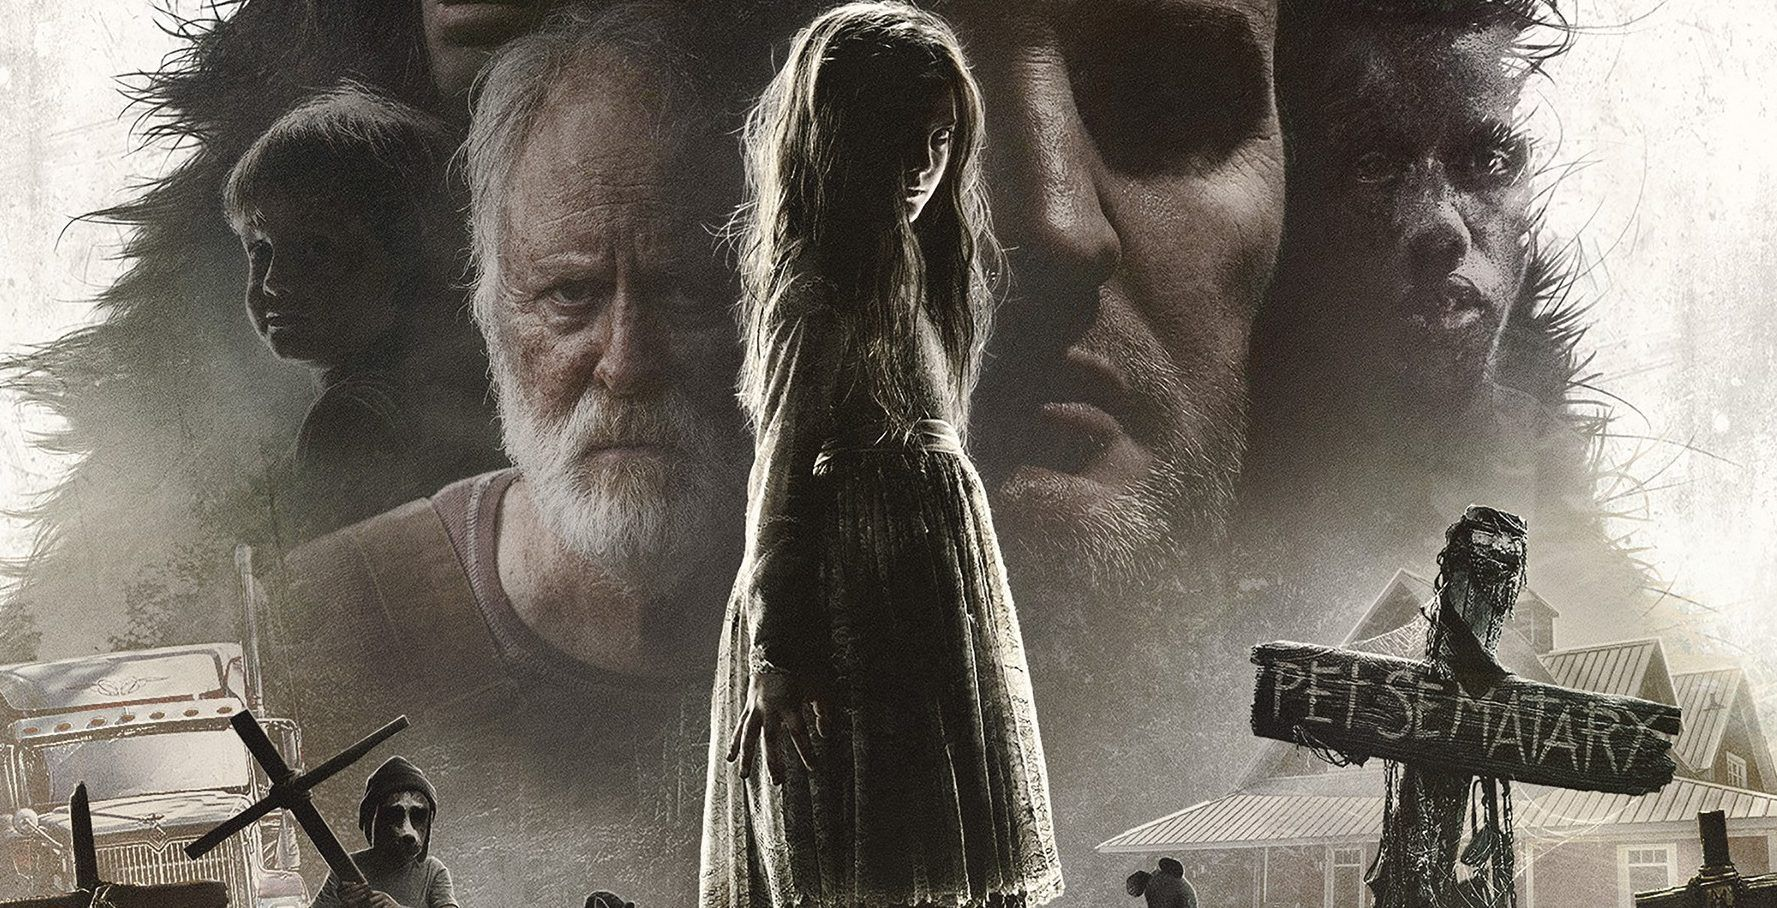 Movie Poster 2019: Pet Sematary (2019) Movie Reviews